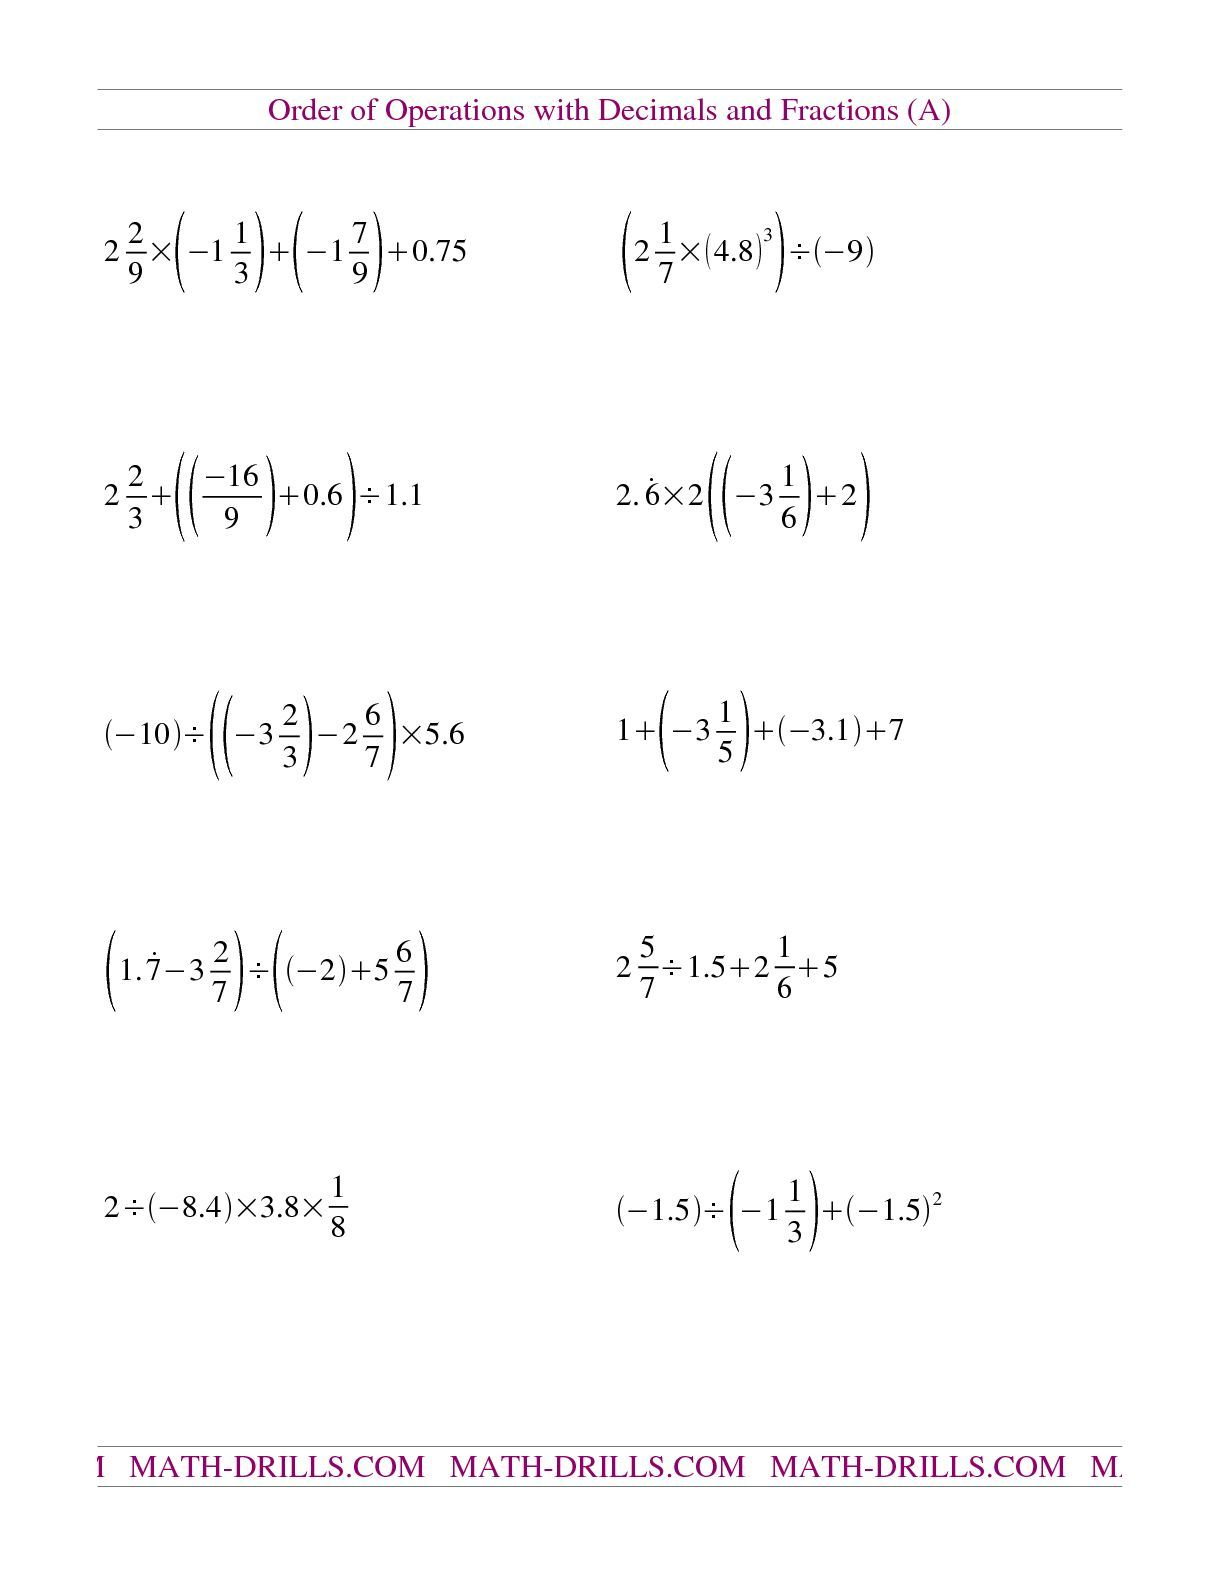 Worksheets Order Of Operations Worksheets 6th Grade the decimals and fractions mixed with negatives a math worksheet from order of operations page at drills co